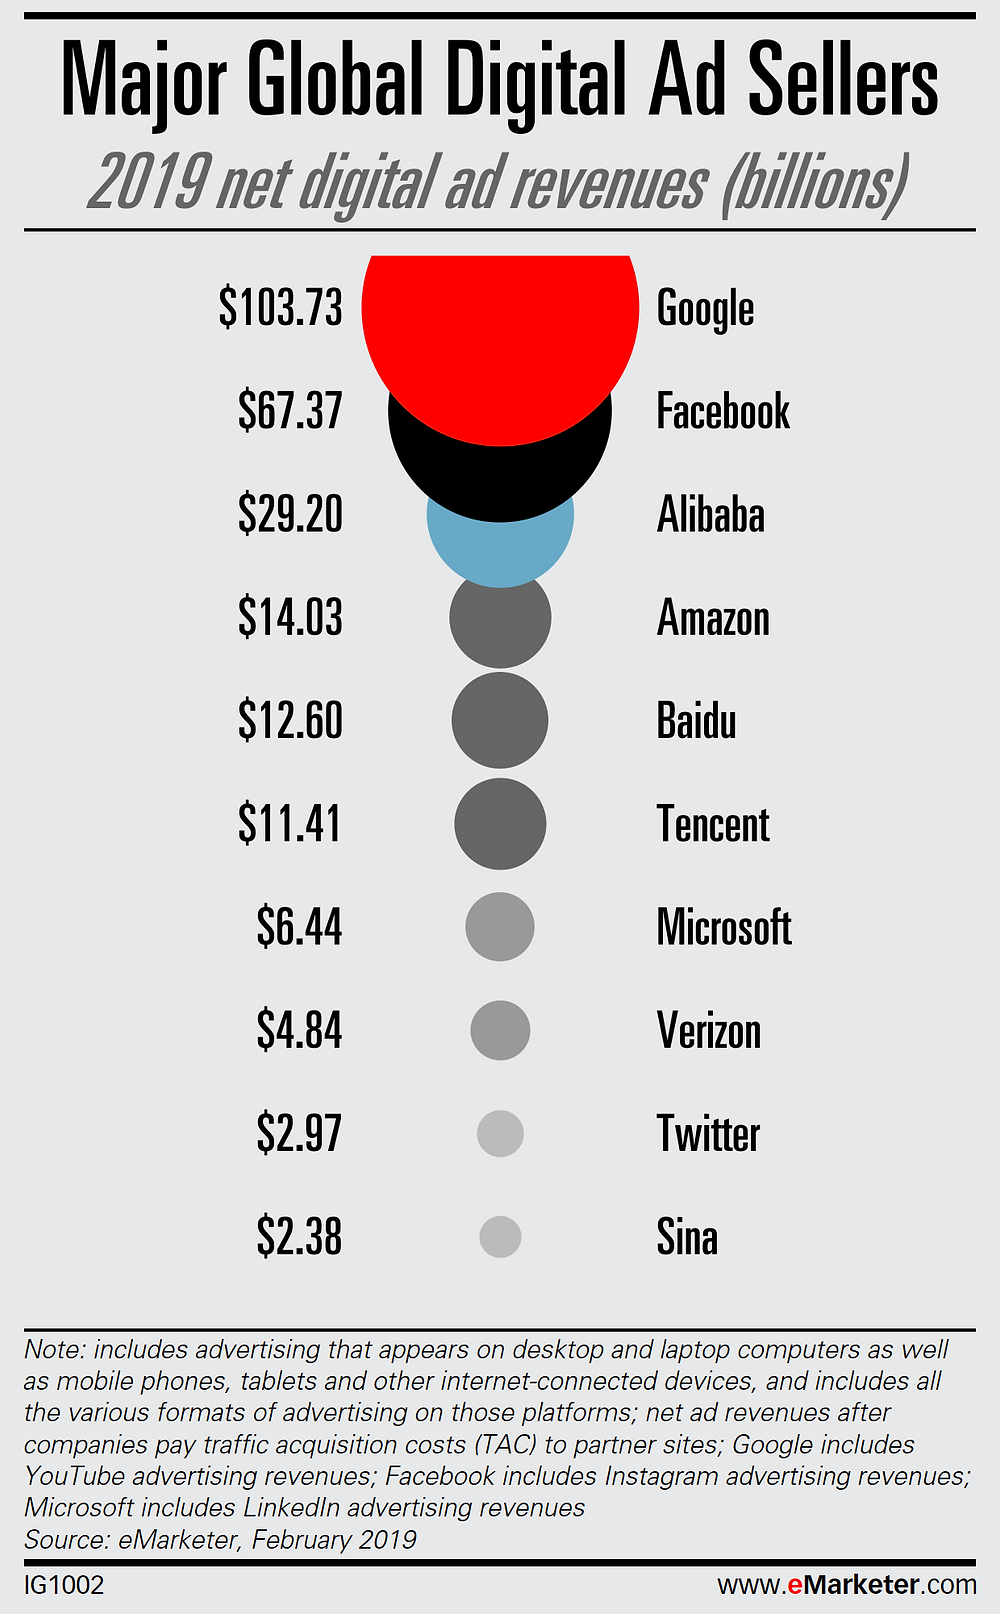 Which companies are more trusted and paid for advertising in the systems of these companies?